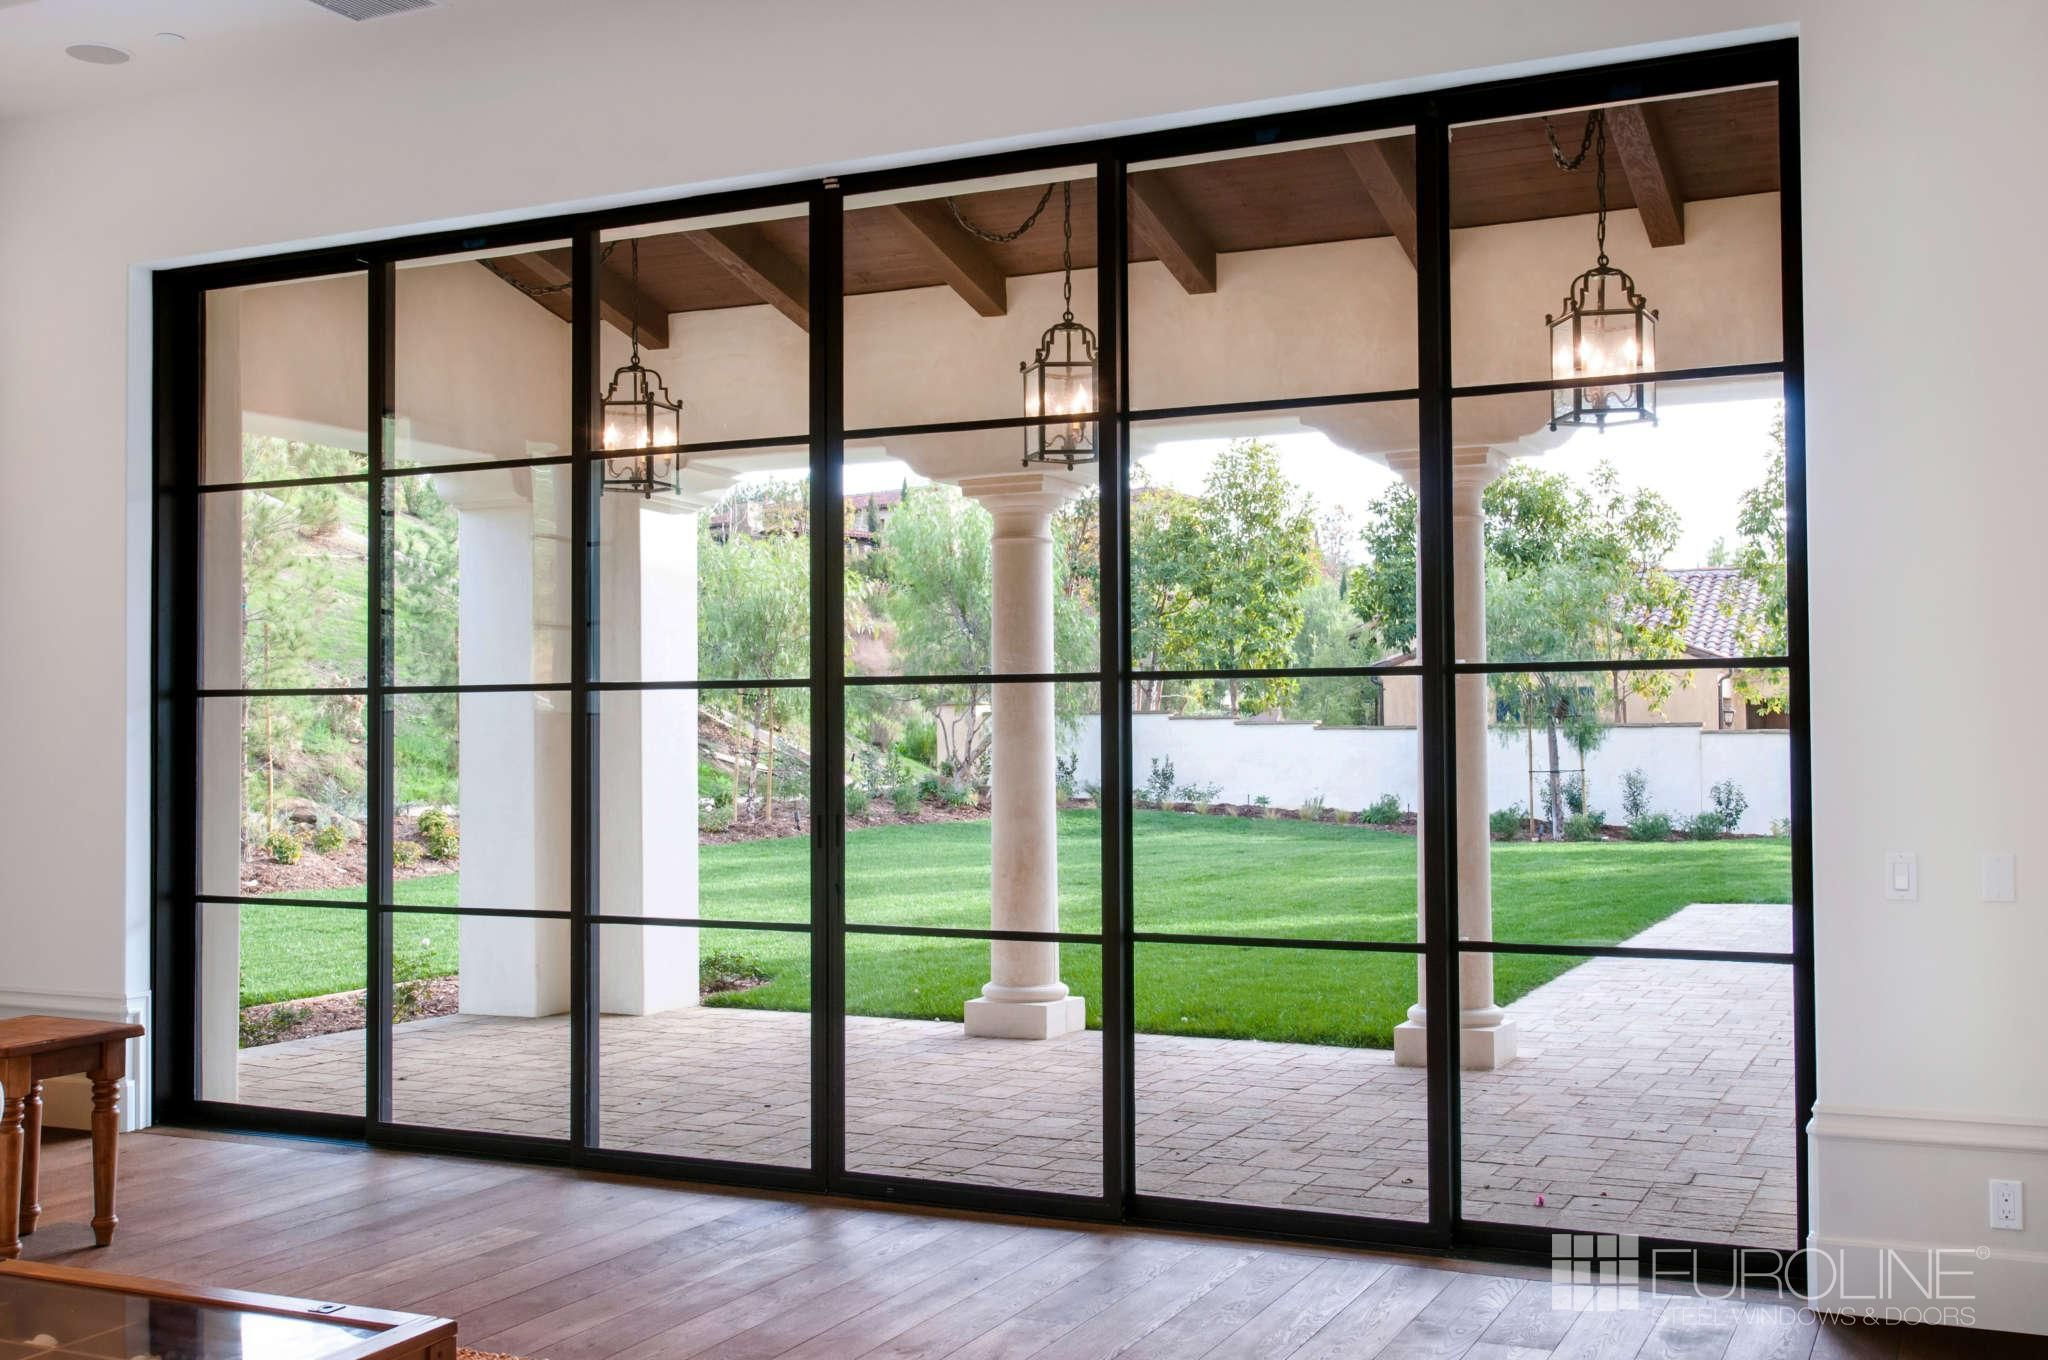 Sliding Doors Euroline Steel Windows Sliding Doors Exterior